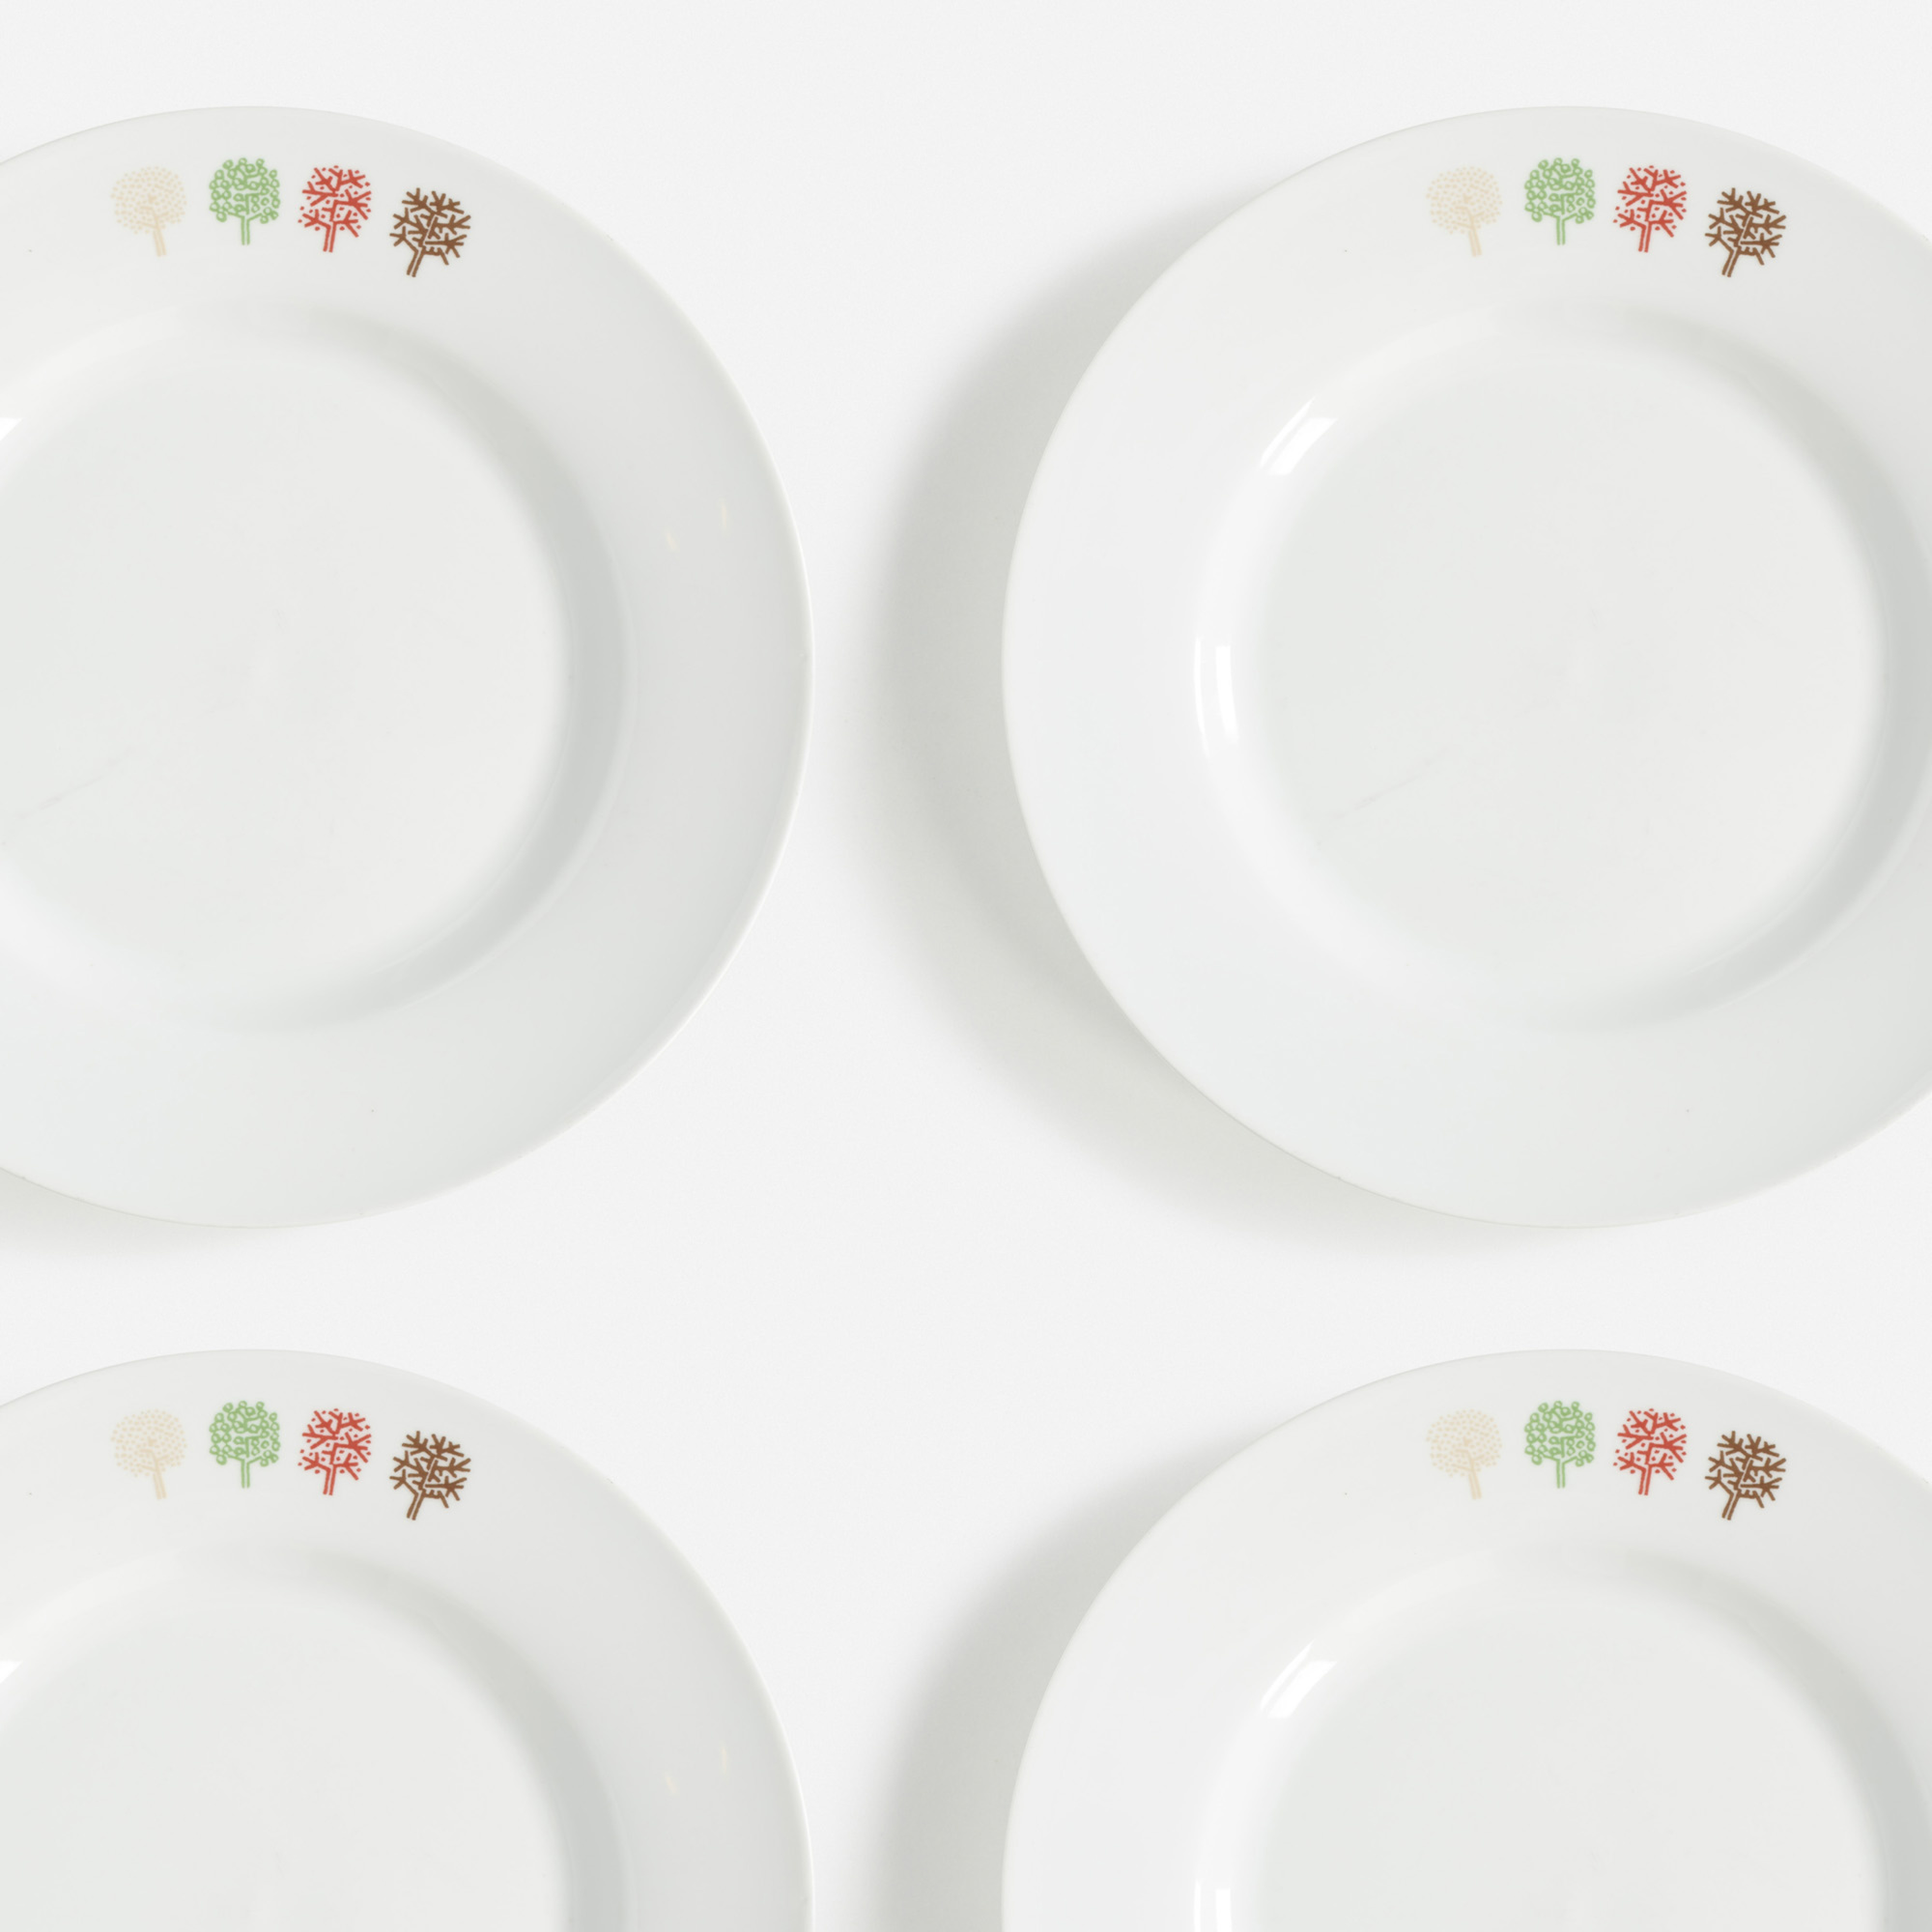 603:  / Four Seasons plates, set of twelve (1 of 1)